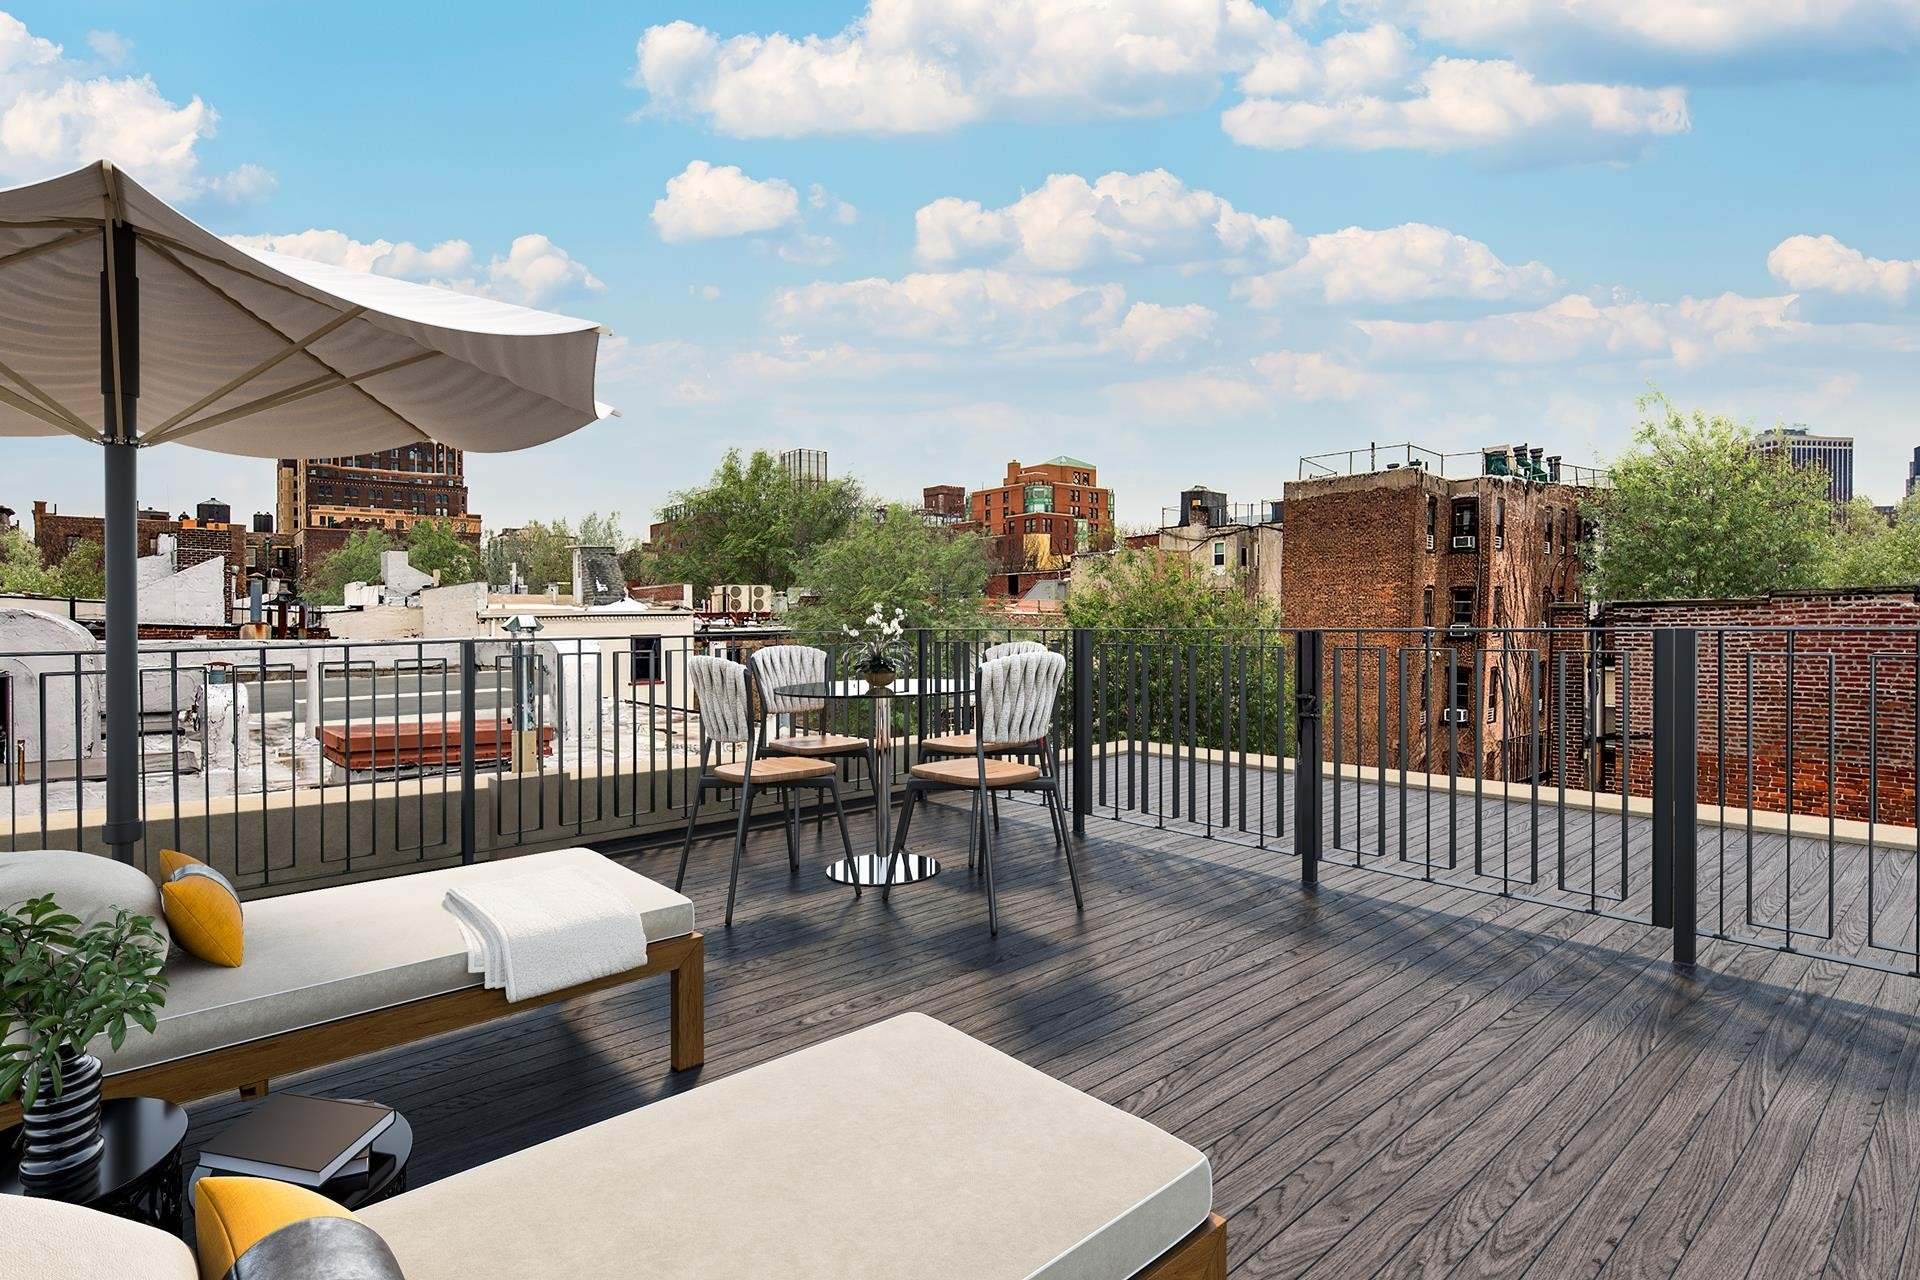 14. Single Family Townhouse for Sale at 50 HICKS ST , TH Brooklyn Heights, Brooklyn, NY 11201